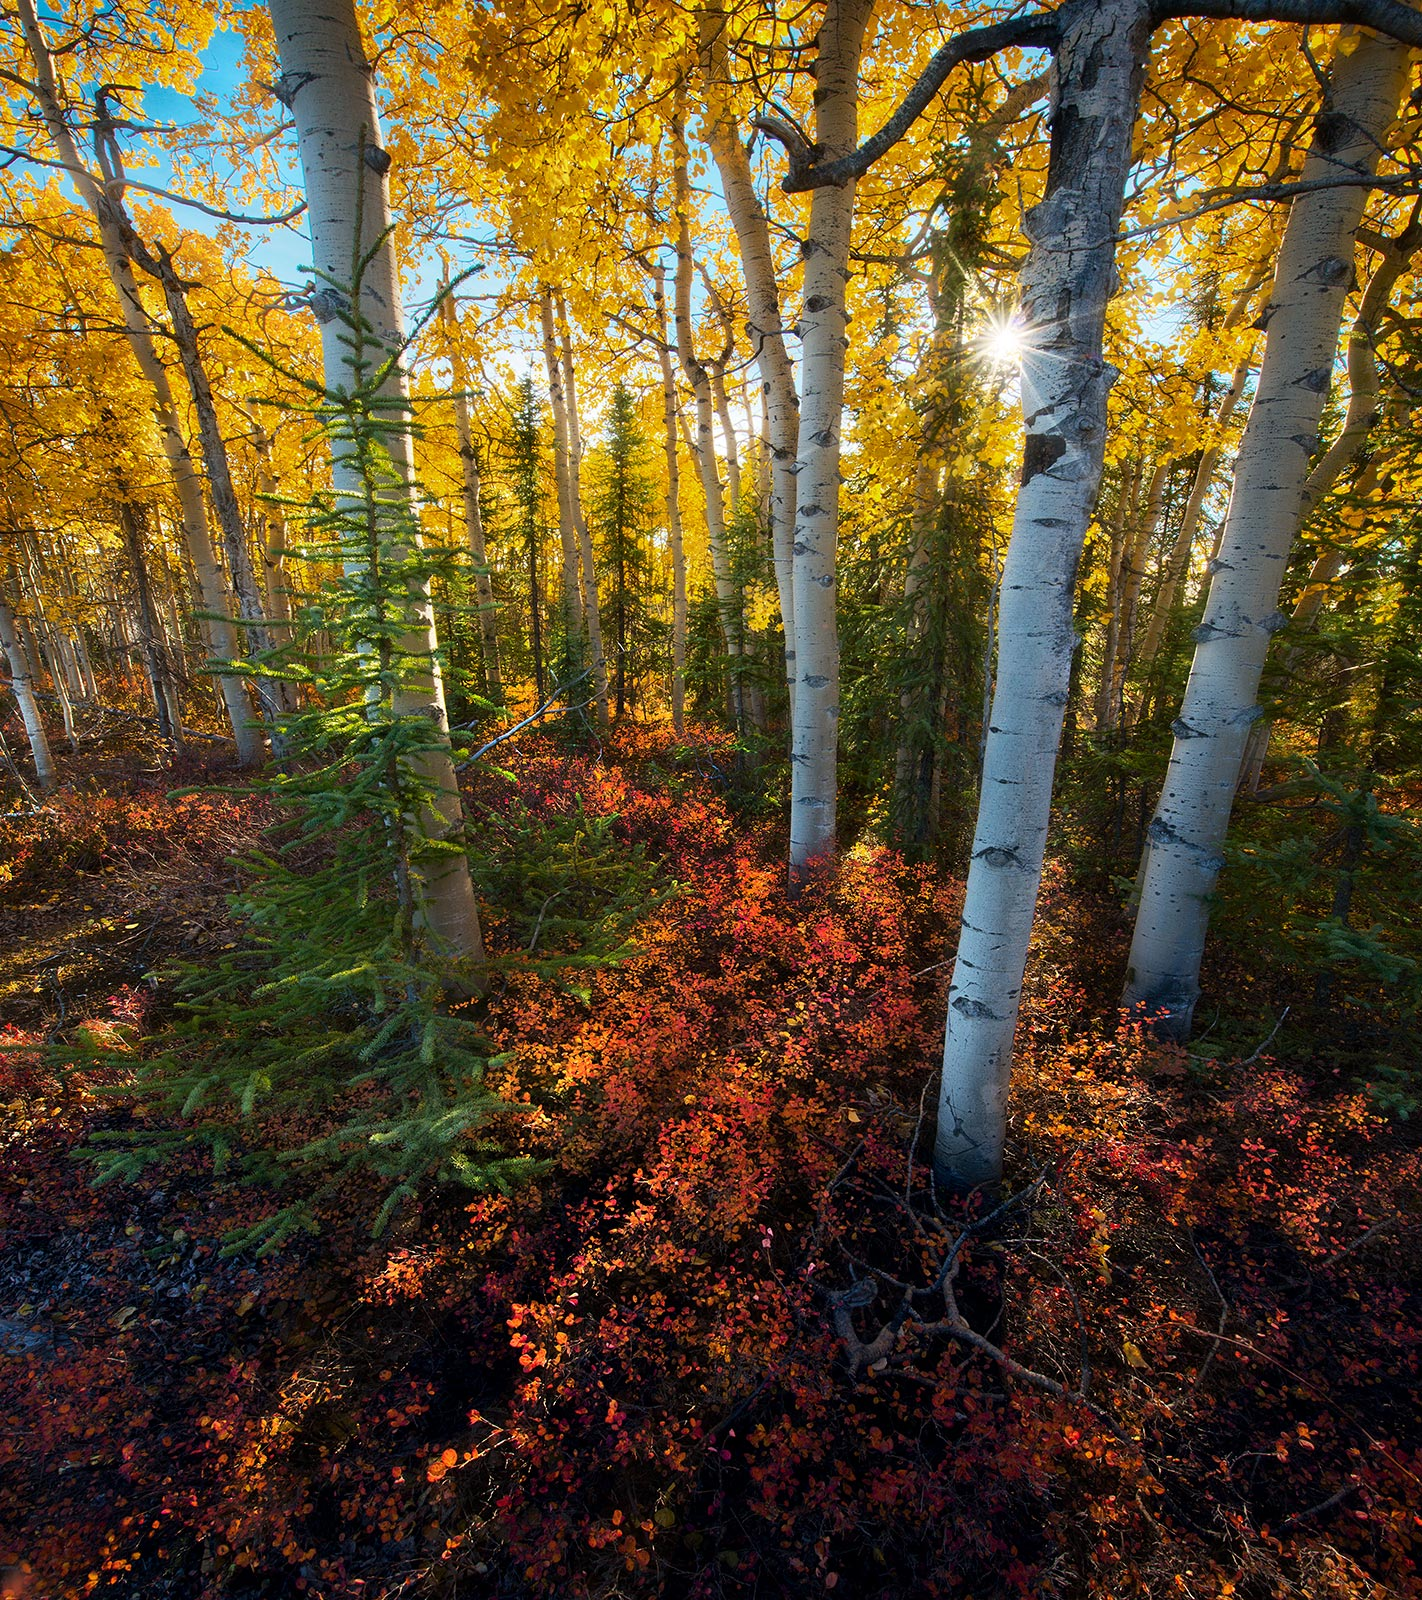 Autumn, Colors, forest, dawson city, yukon, photo